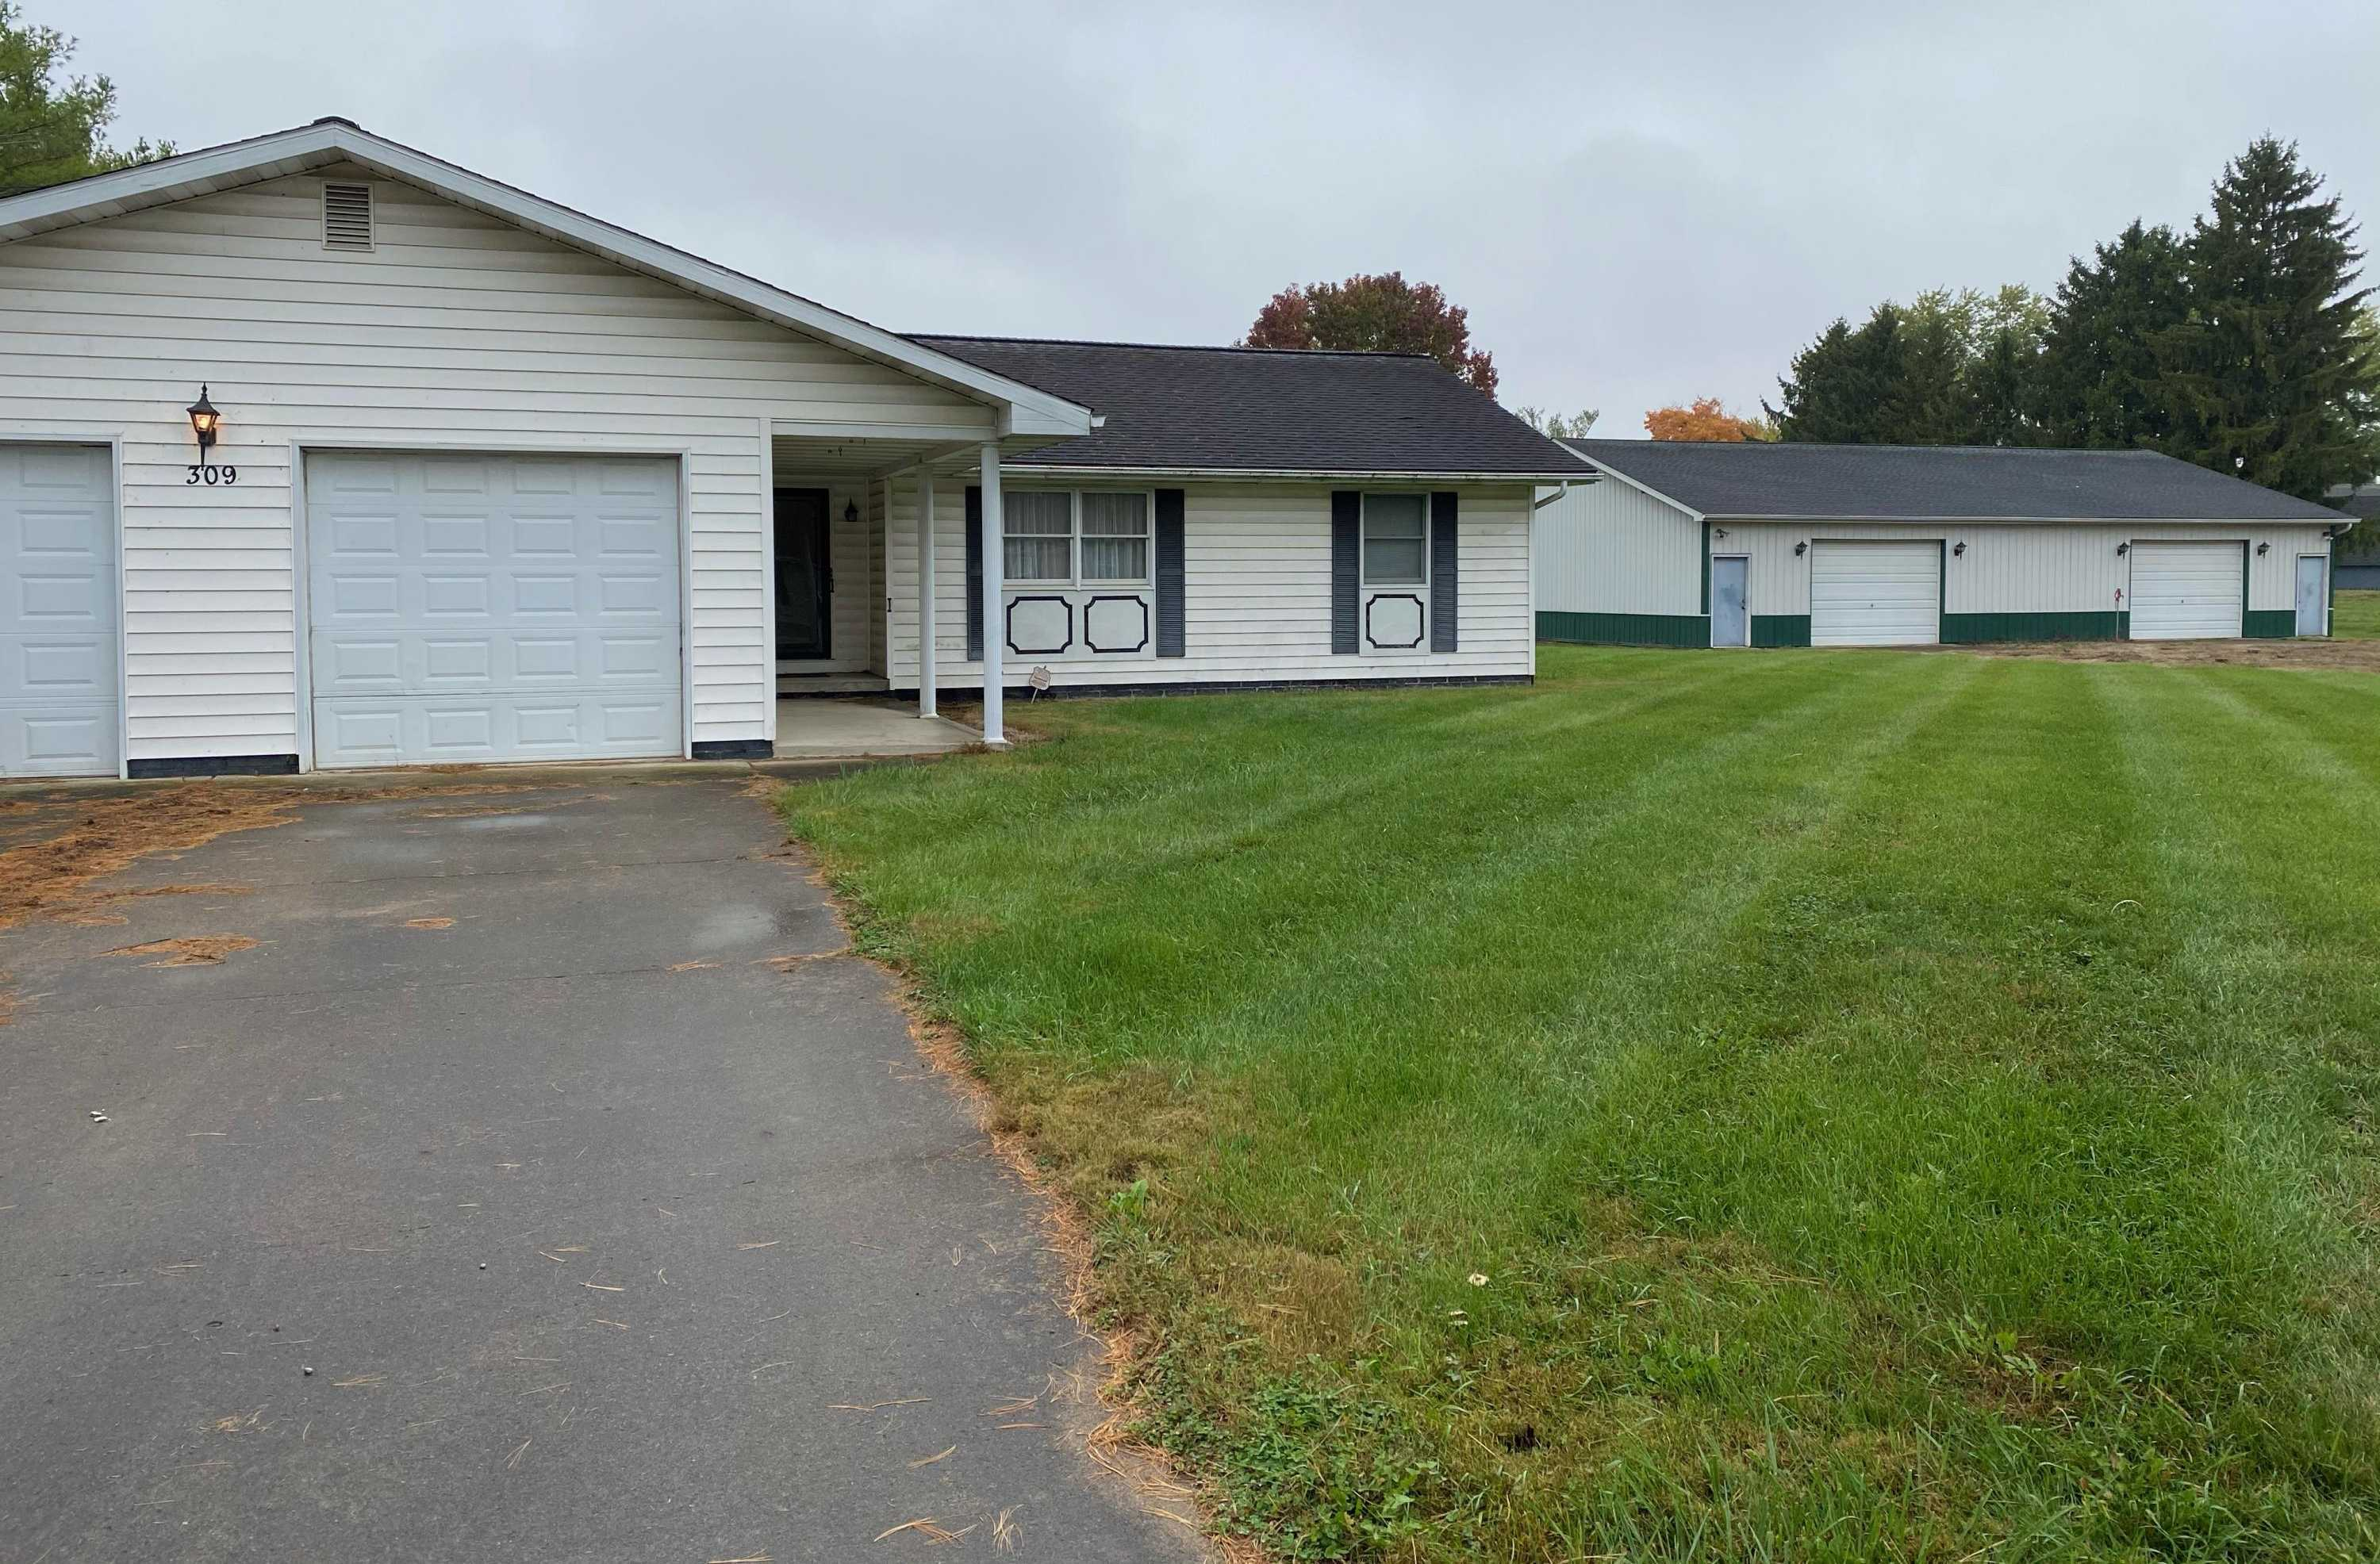 309 Sumpter Avenue Circleville,OH 43113 220037141